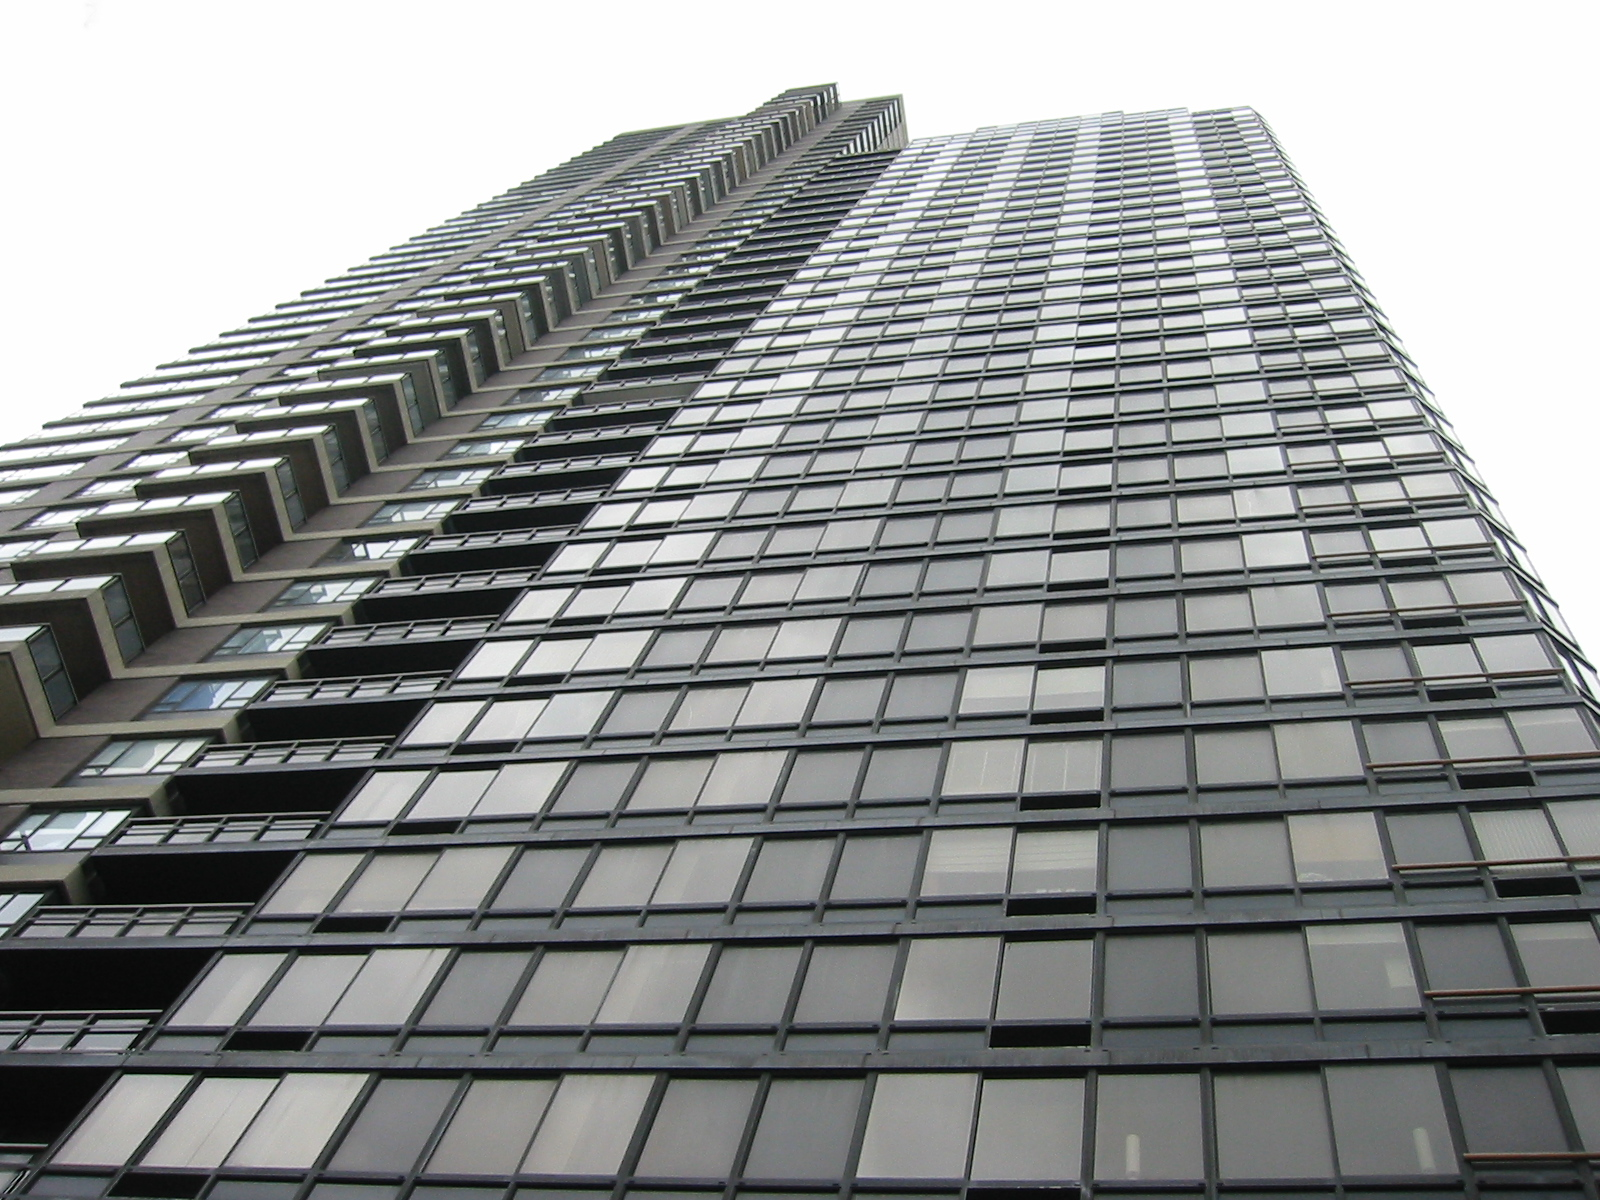 midtown condo apartments for sale in nyc manhattan new york